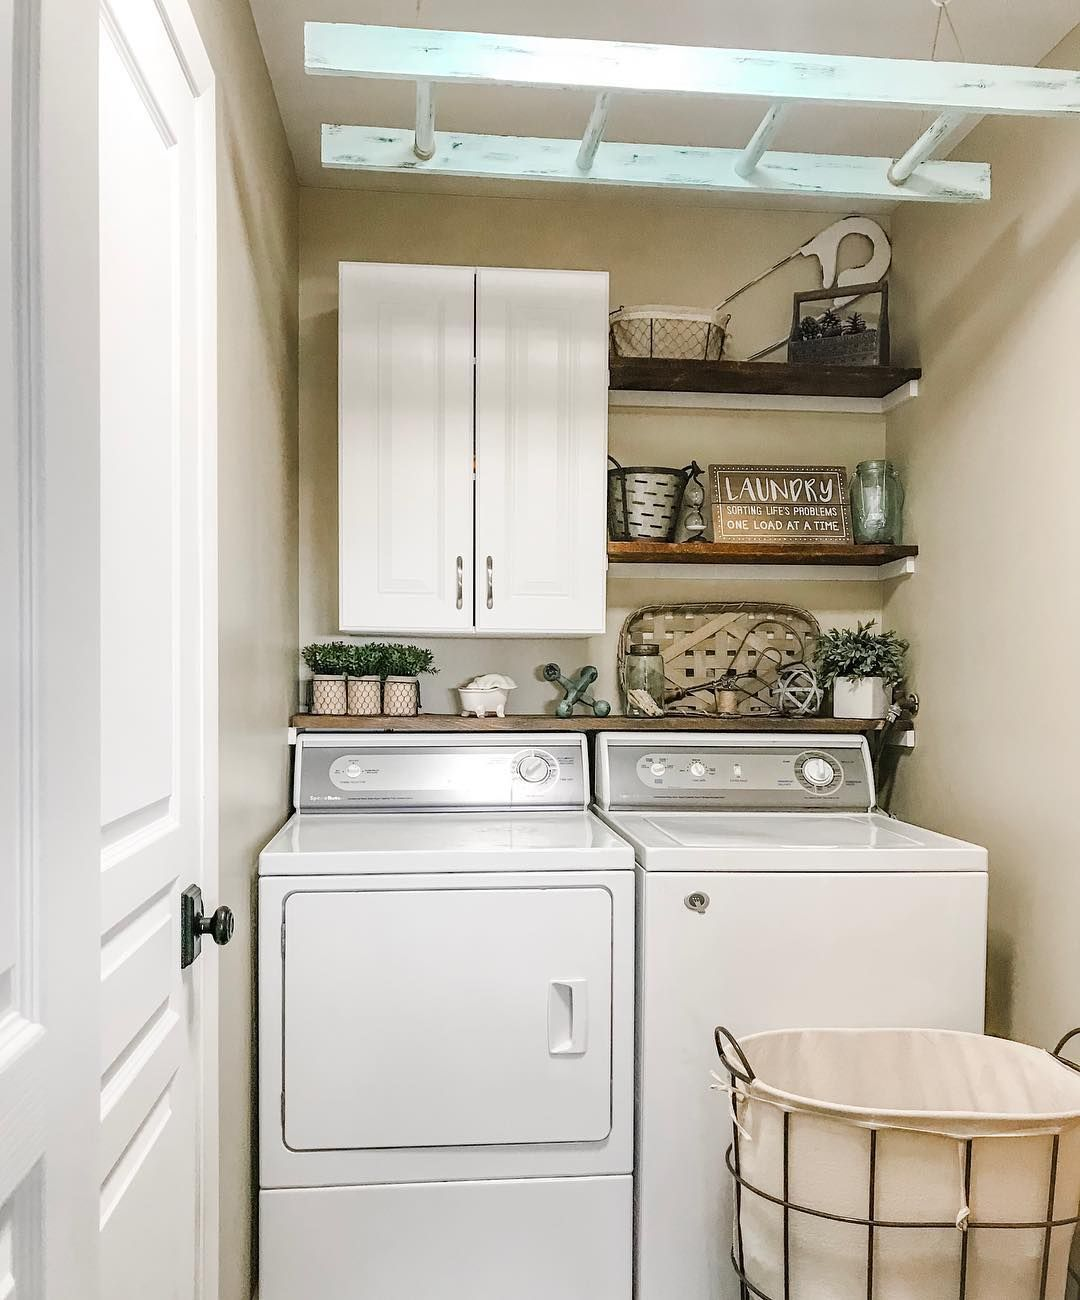 20 brilliant laundry room ideas for small spaces on best laundry room designs id=56664